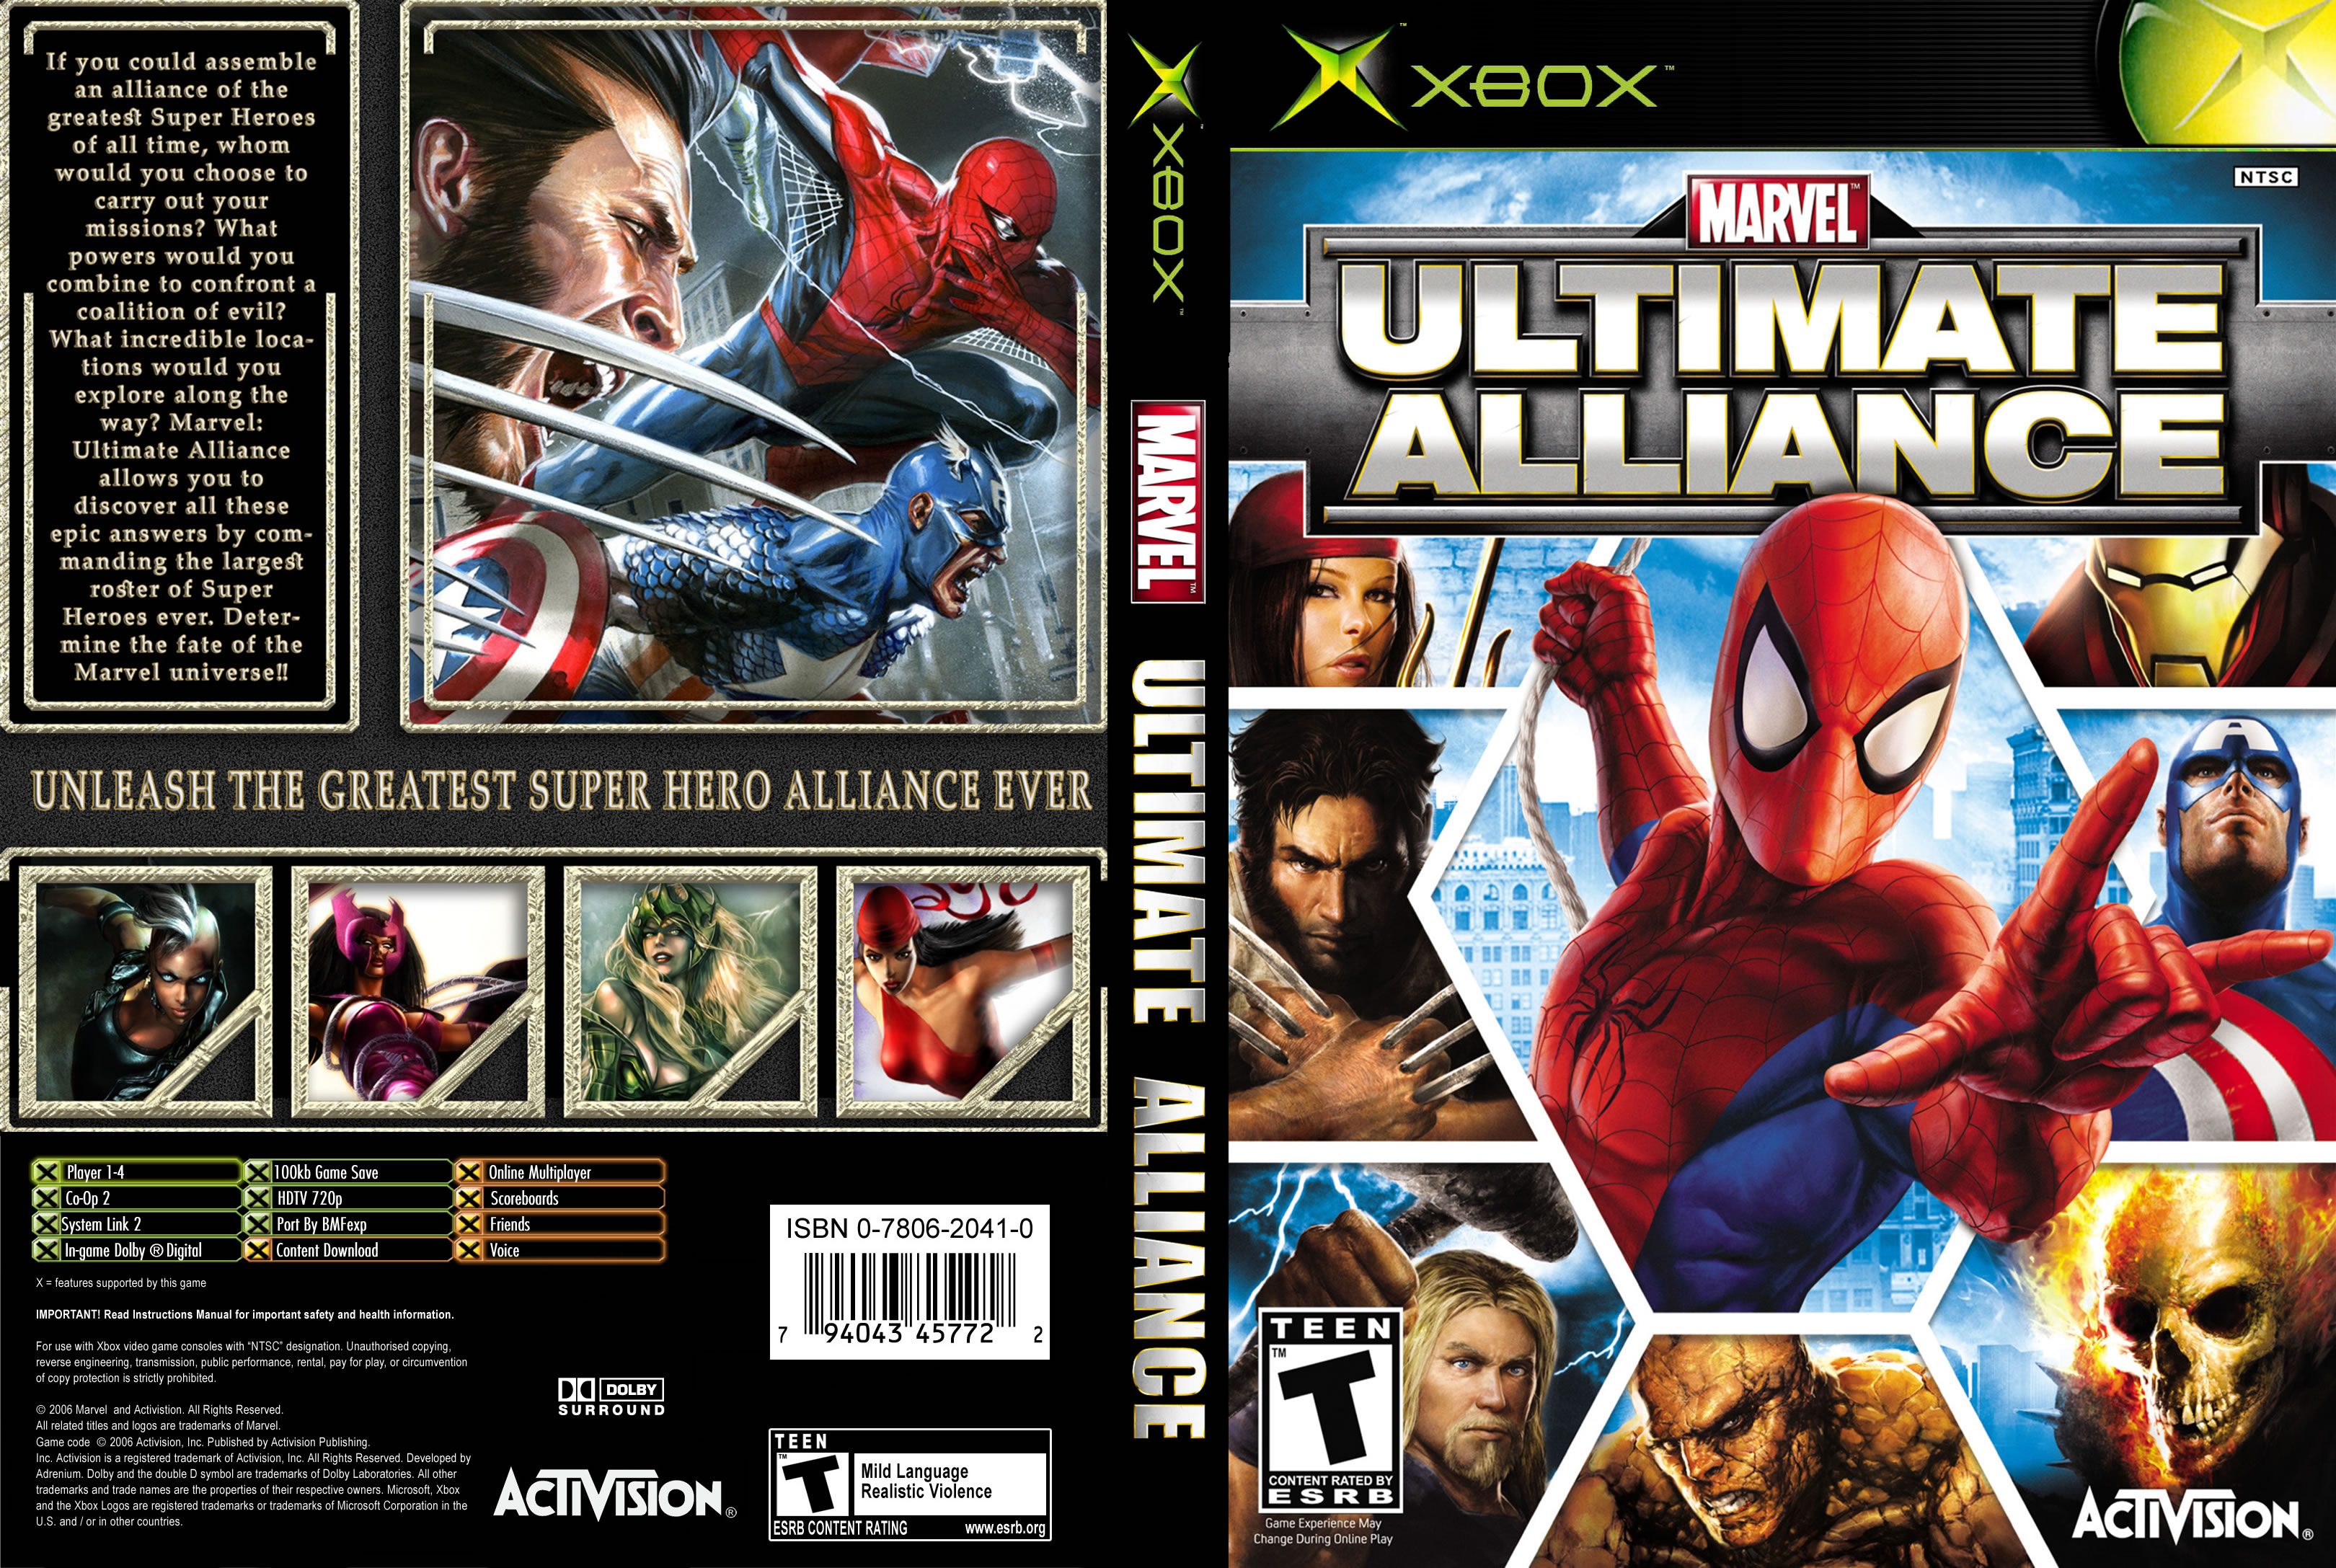 Marvel Ultimate Alliance: the last great licensed video game